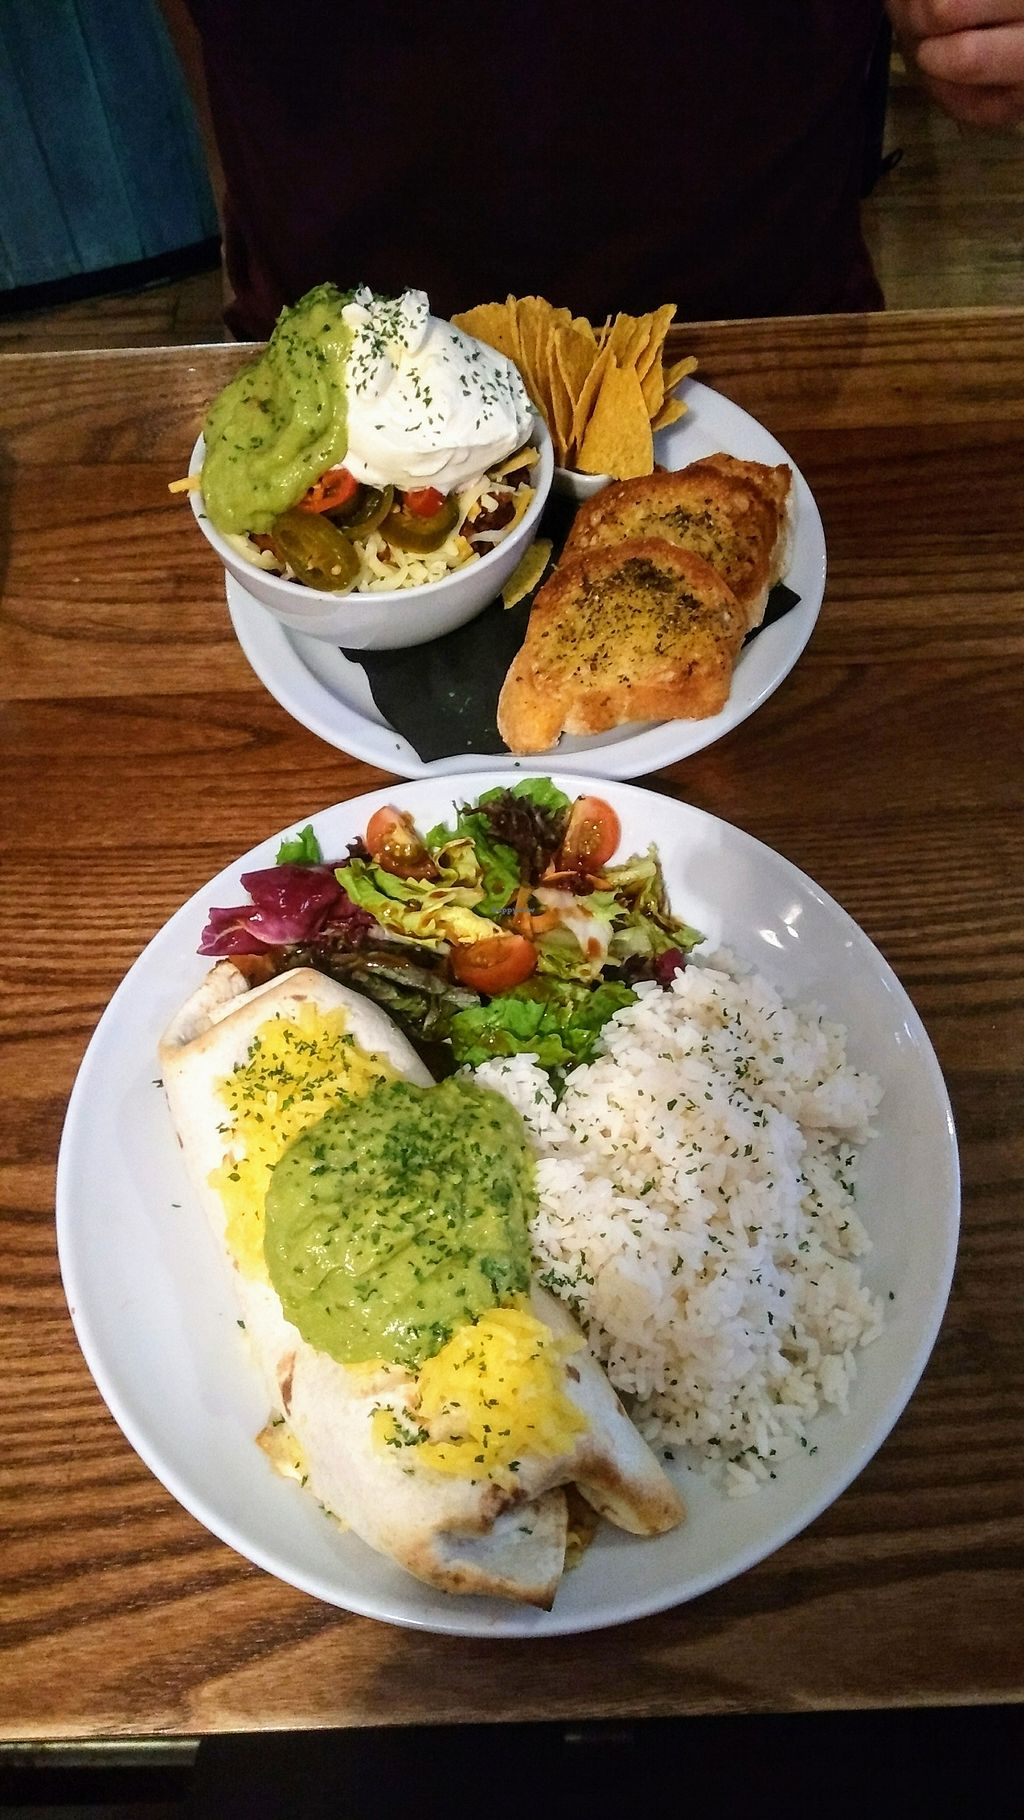 """Photo of The Auld Hoose  by <a href=""""/members/profile/putavegana"""">putavegana</a> <br/>vegan burrito & non-veg chilli <br/> August 23, 2017  - <a href='/contact/abuse/image/42585/296213'>Report</a>"""